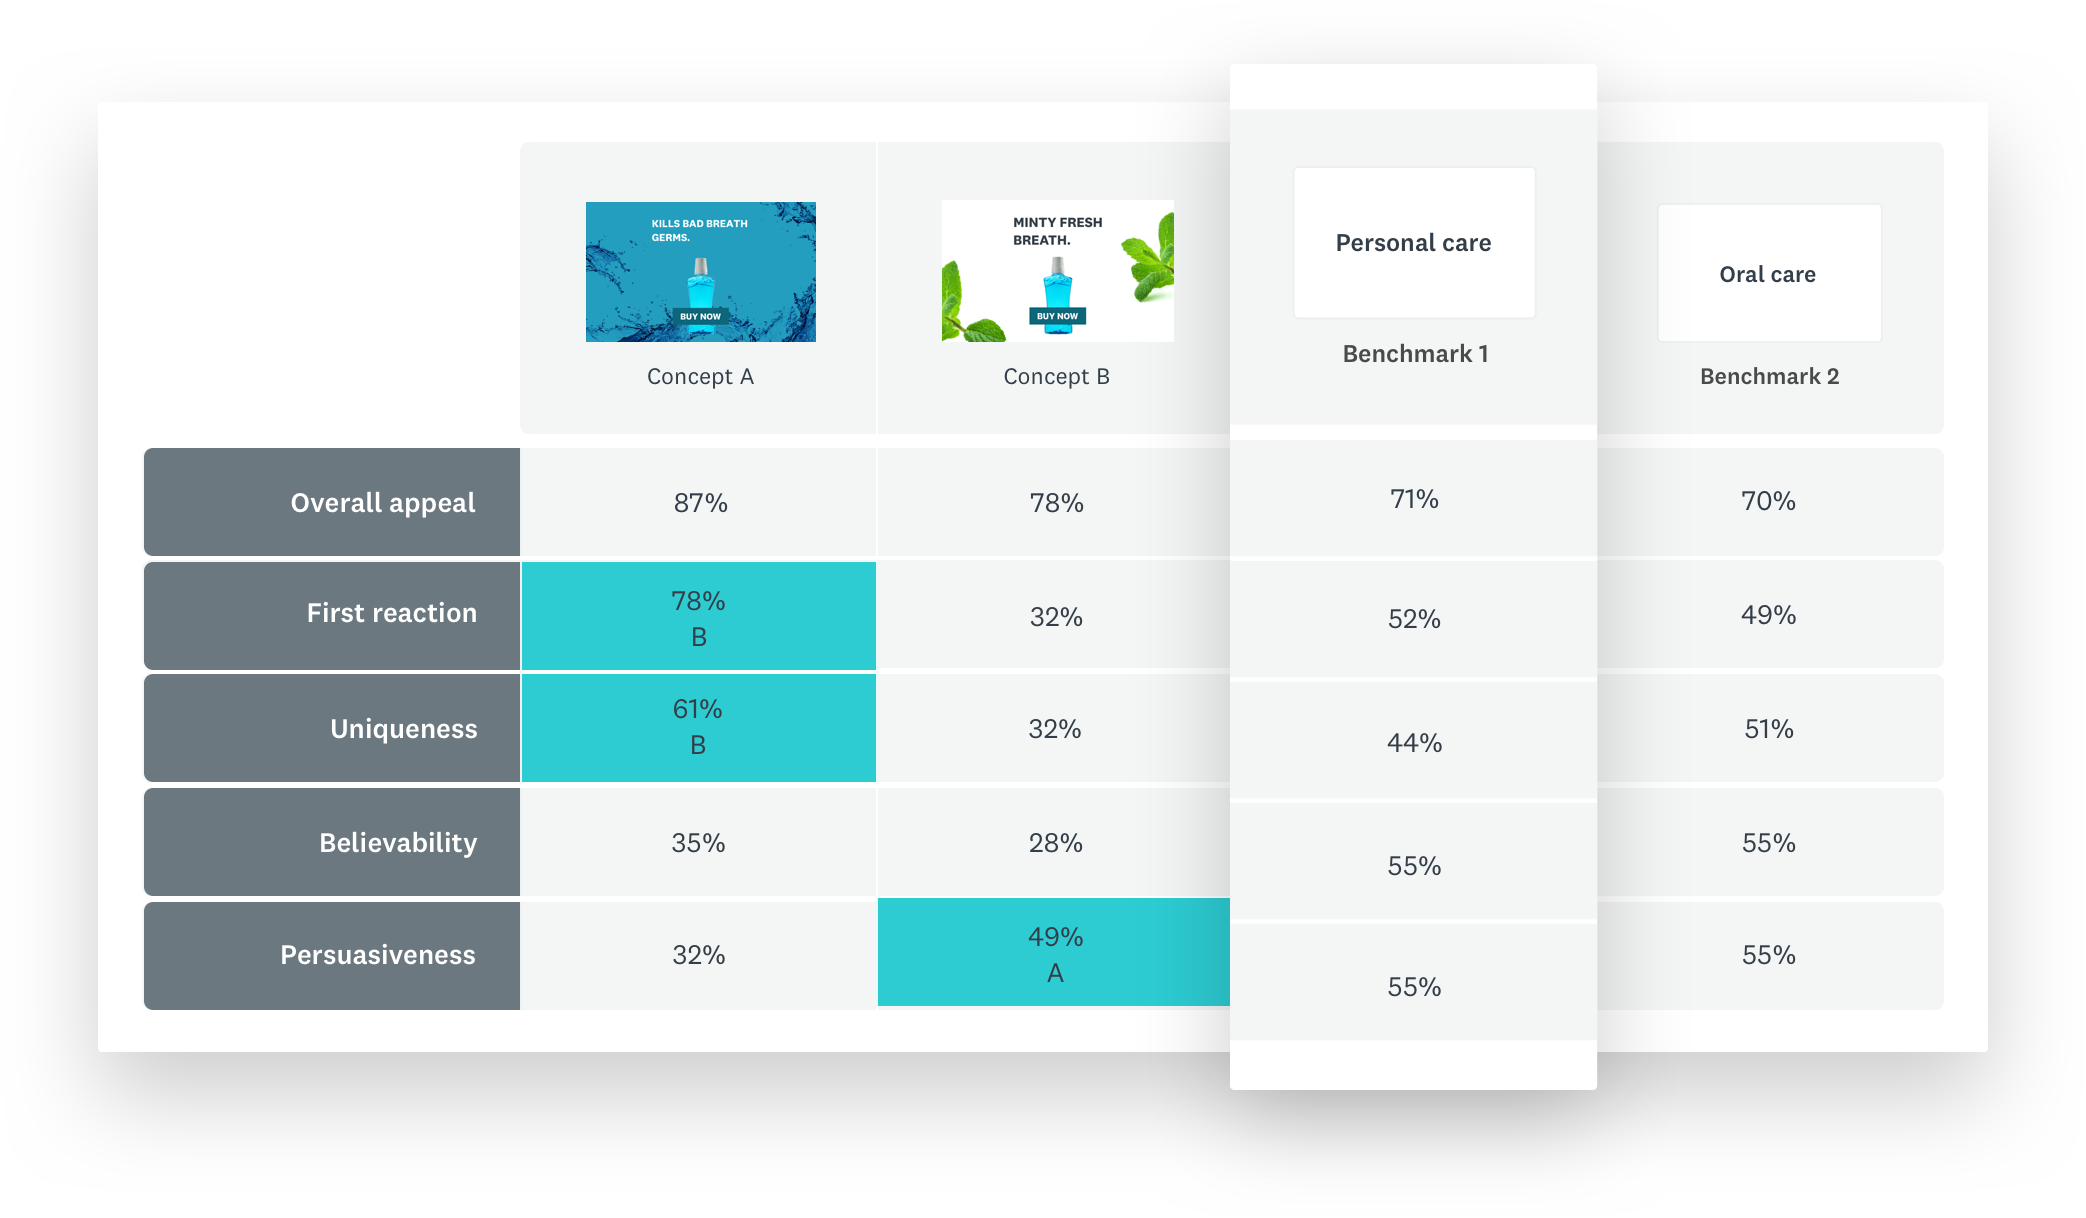 Scorecard of ad concept test with benchmark data